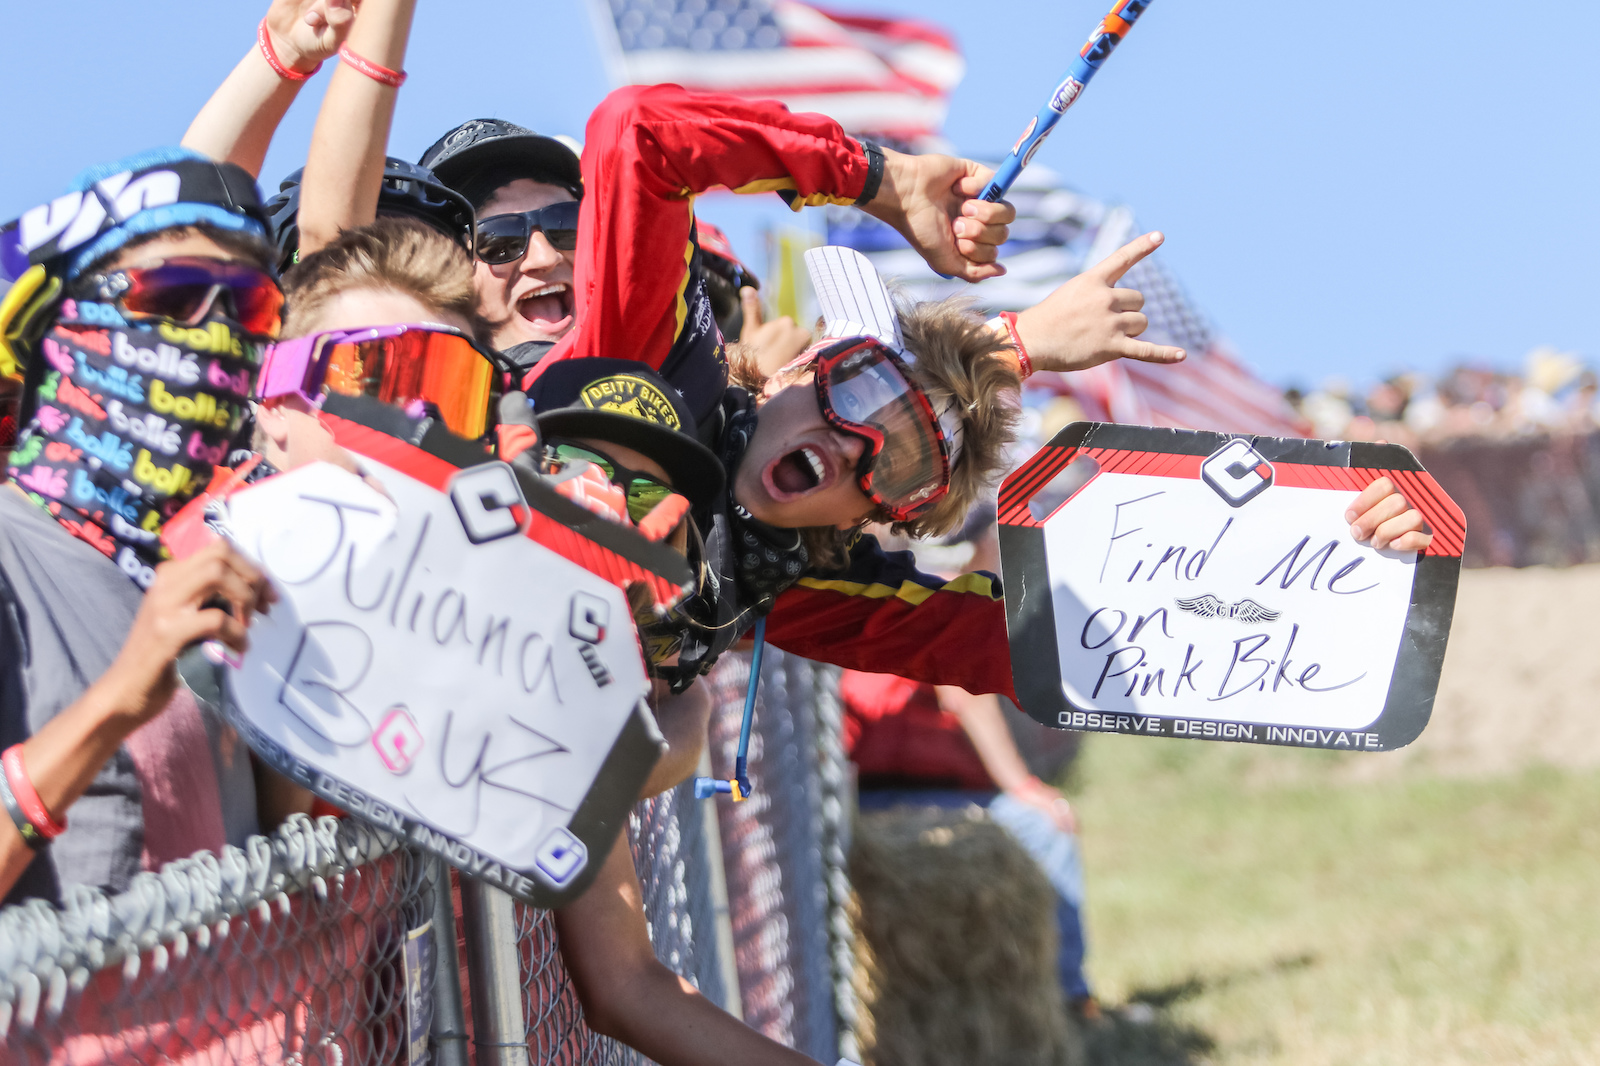 The crowd at the Sea Otter Classic is always packed full of Pinkbike fans.